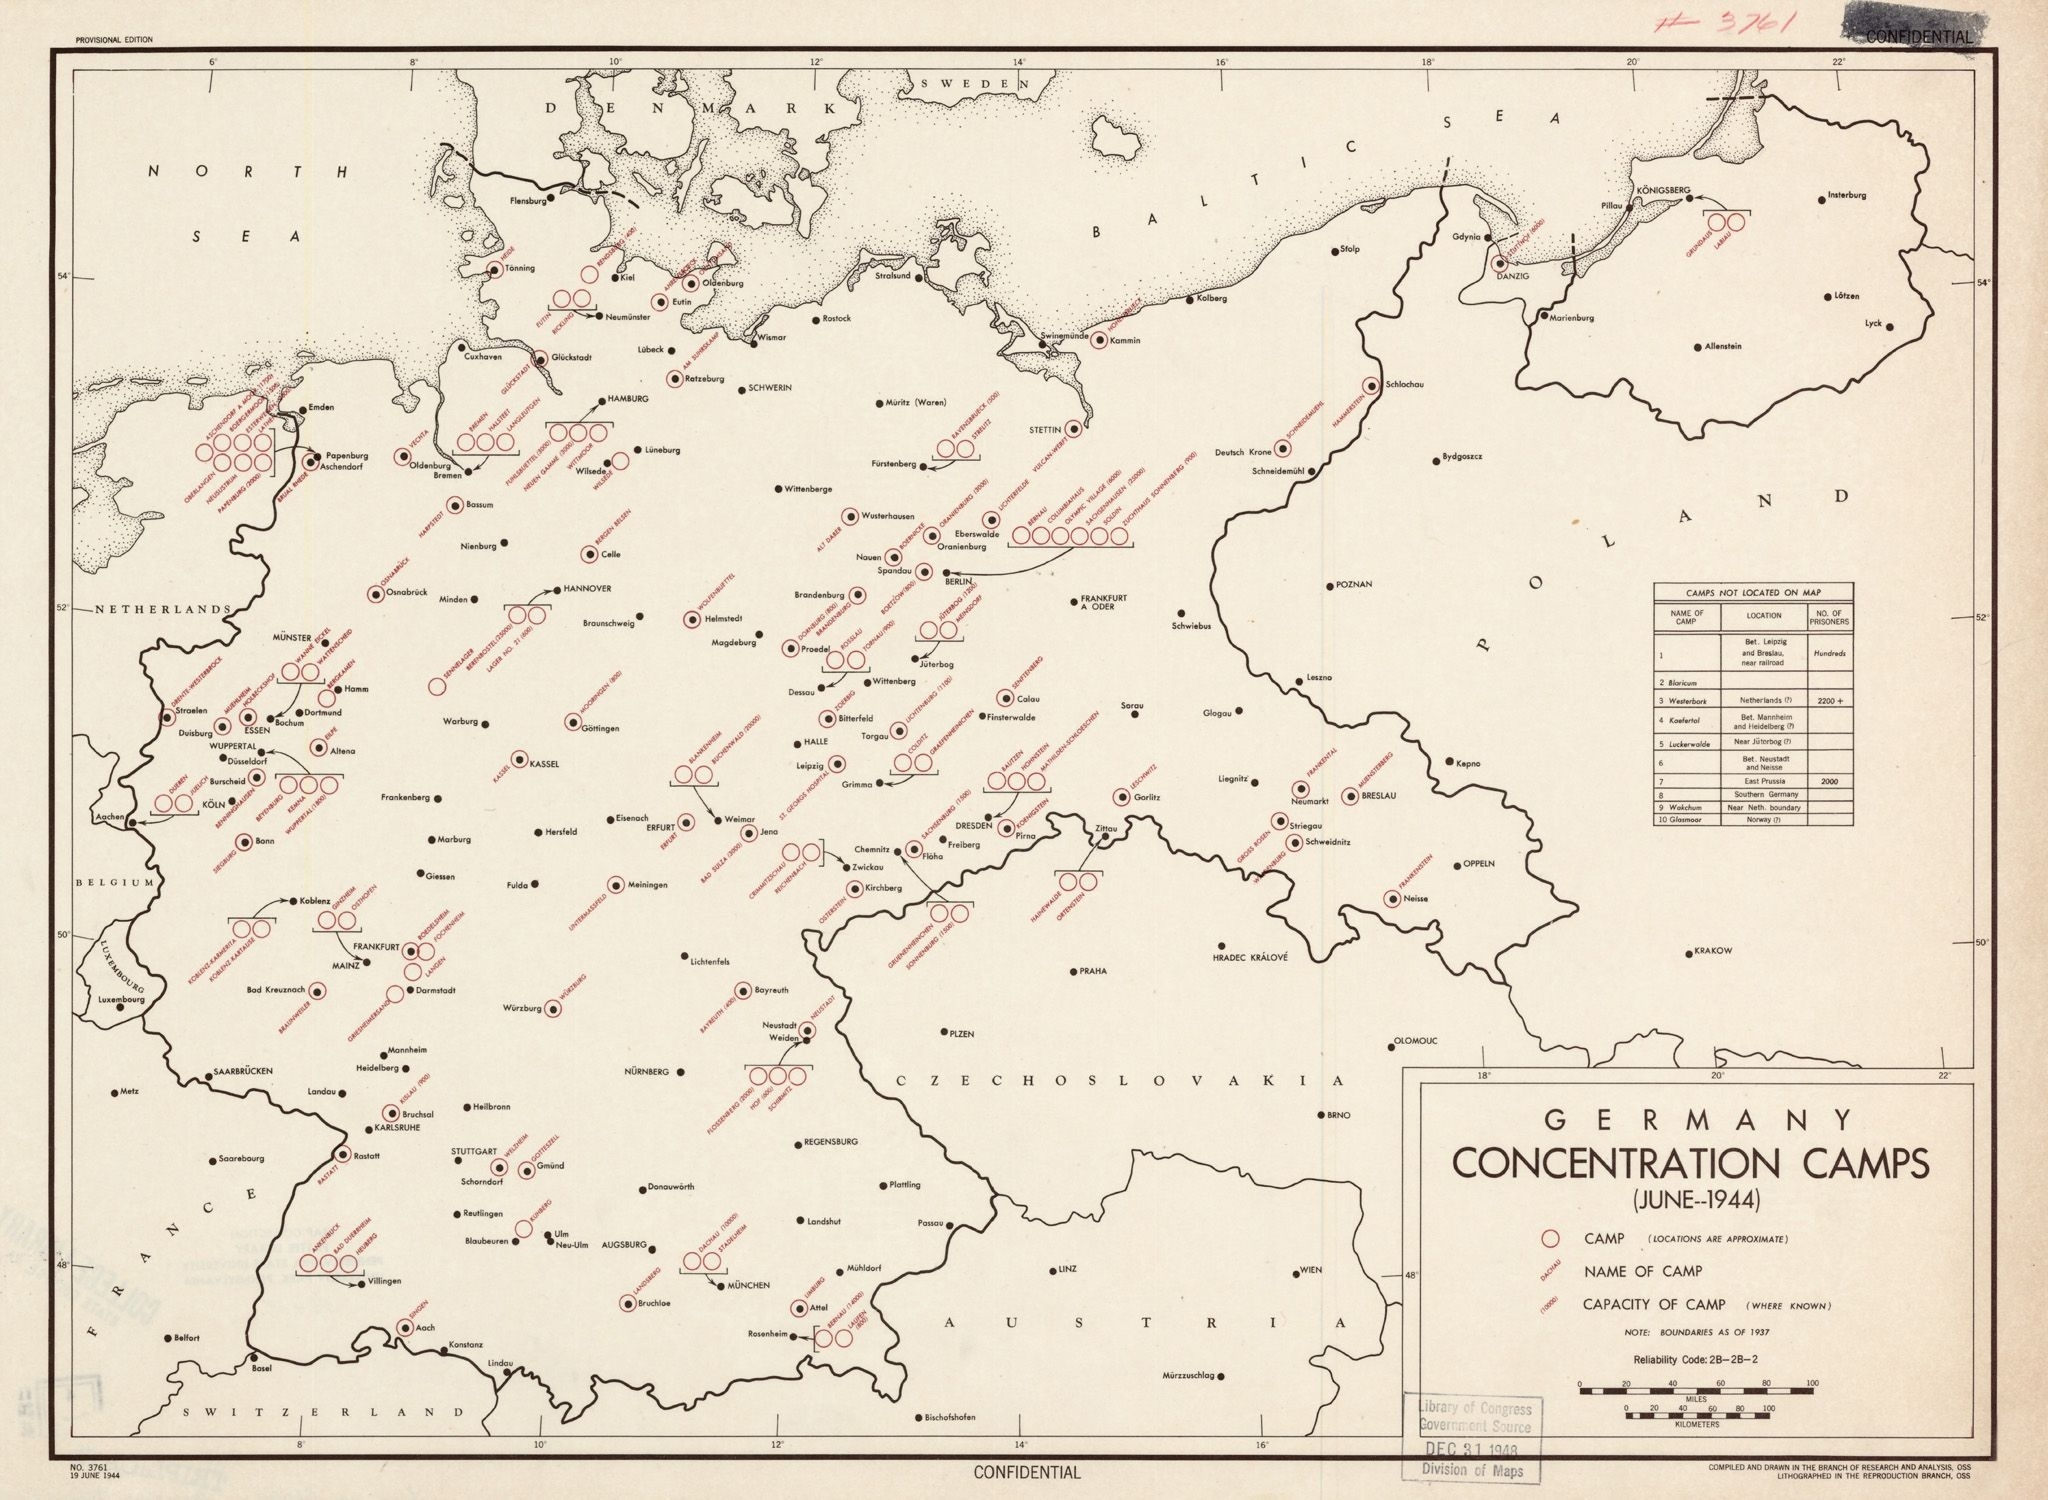 Map Of The Concentration Camps In Germany, As Knownthe Oss In throughout Map Concentration Camps In Germany